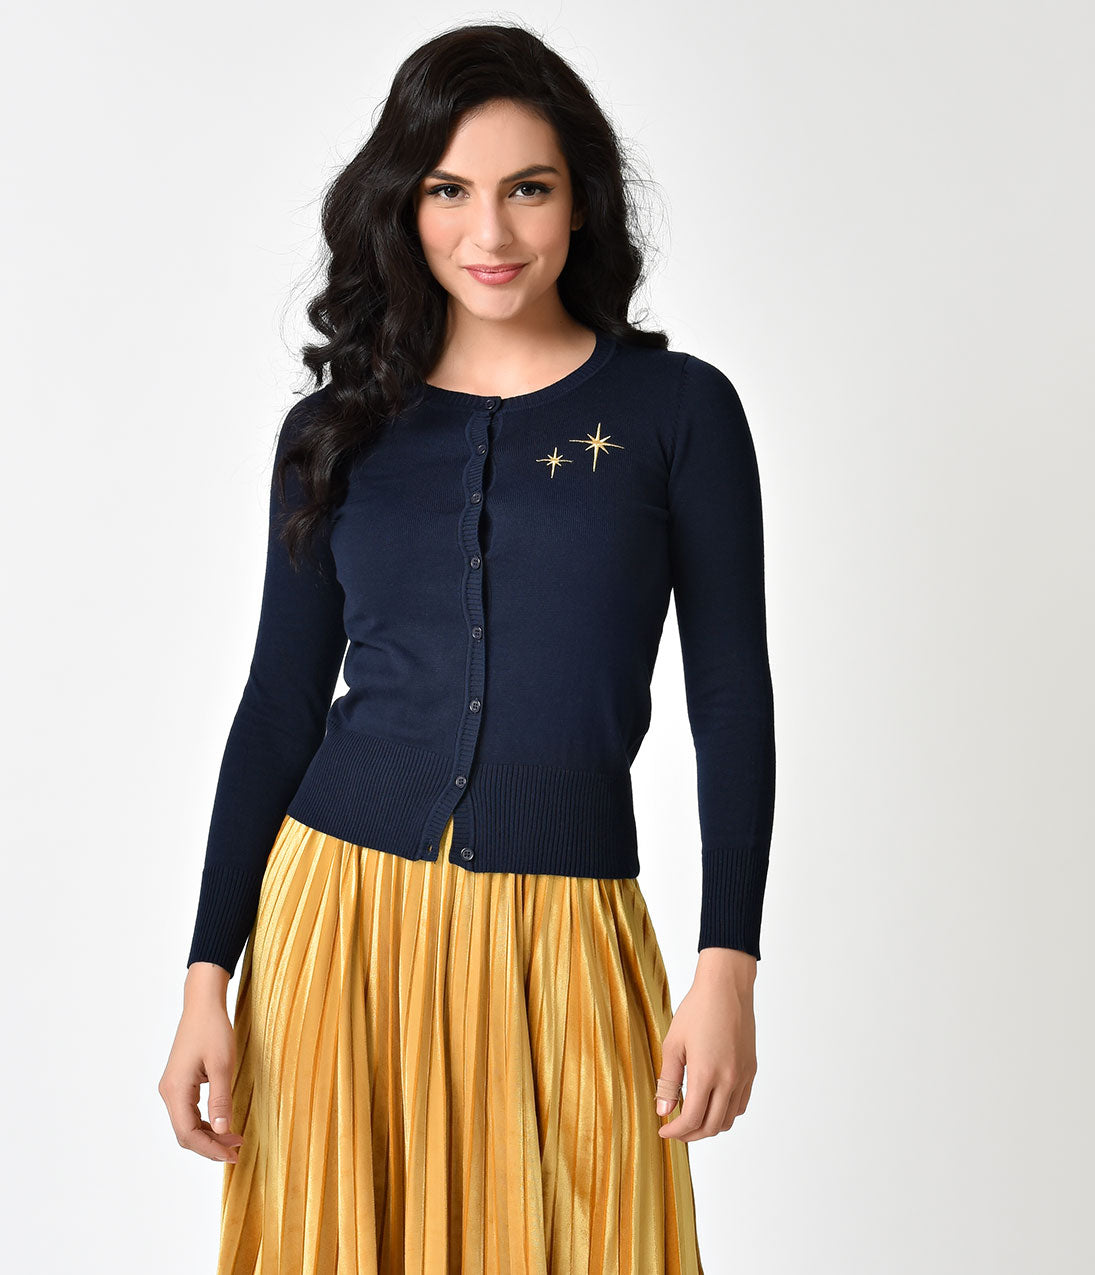 Vintage Sweaters: Cable Knit, Fair Isle Cardigans & Sweaters Whosits and Whatsits Navy Blue  Gold Embroidery Second Star Cardigan $30.00 AT vintagedancer.com